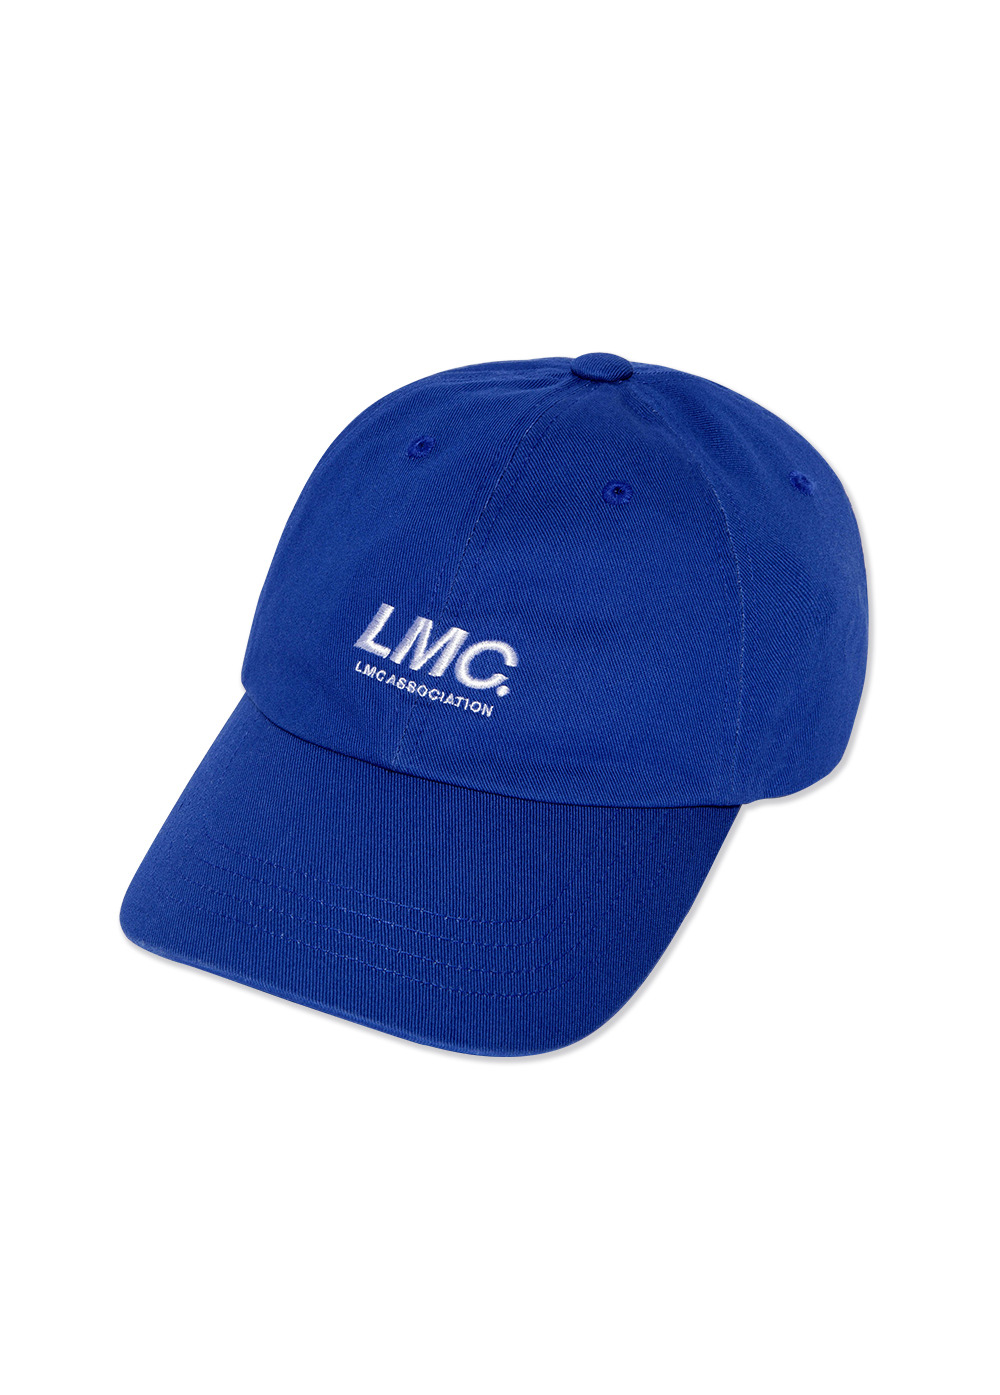 LMC ITALIC ASSOCIATION 6 PANEL CAP royal blue